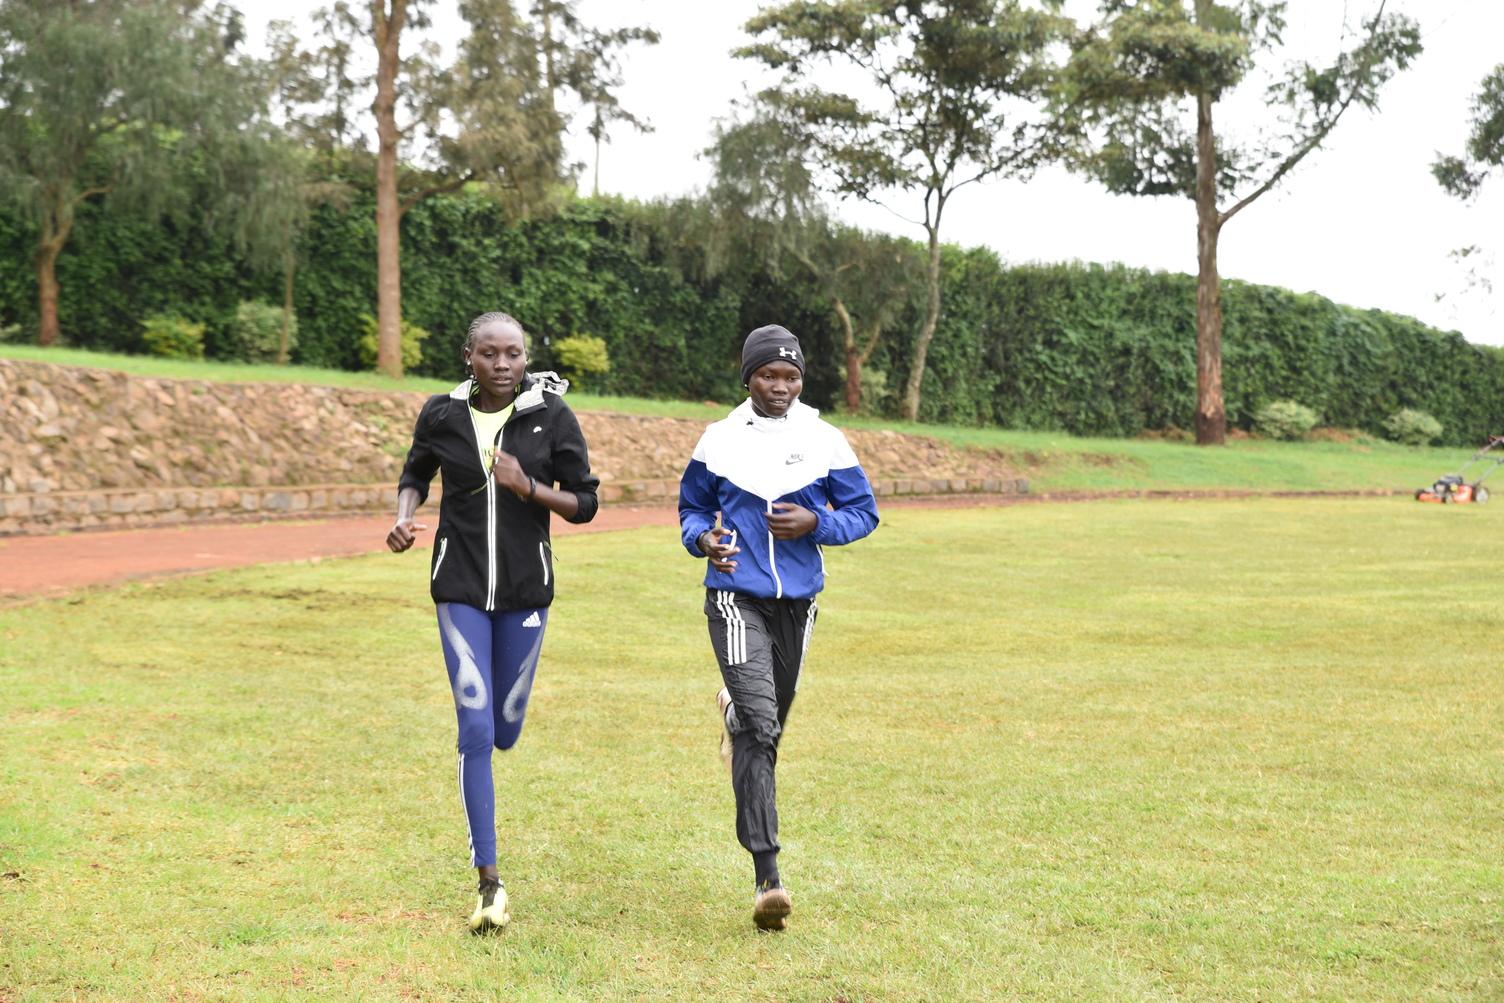 Five Refugees from Kenya Camps make the Refugee Olympics Team